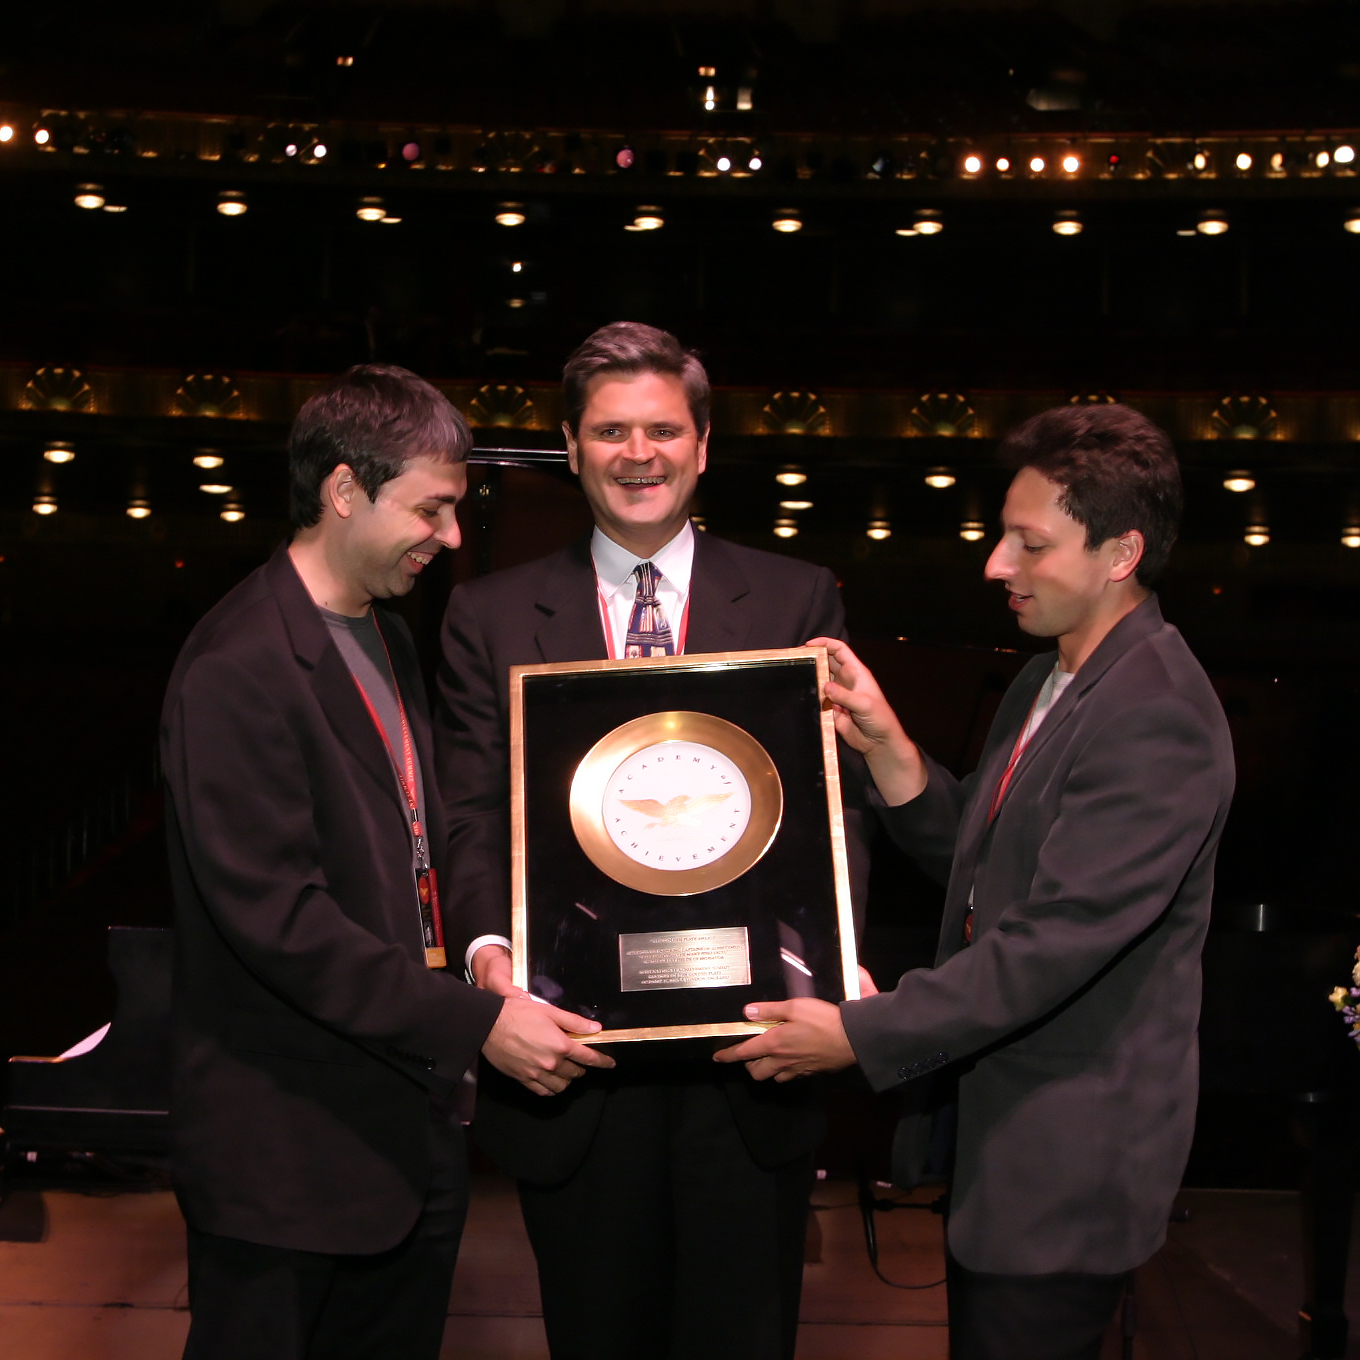 Arresting Sergey Brin At Civic Opera House Sergey Brin Academy Genplate Award To Both Larry Page Achievement Stephen Case Presents American Academy curbed Sergey Brin House